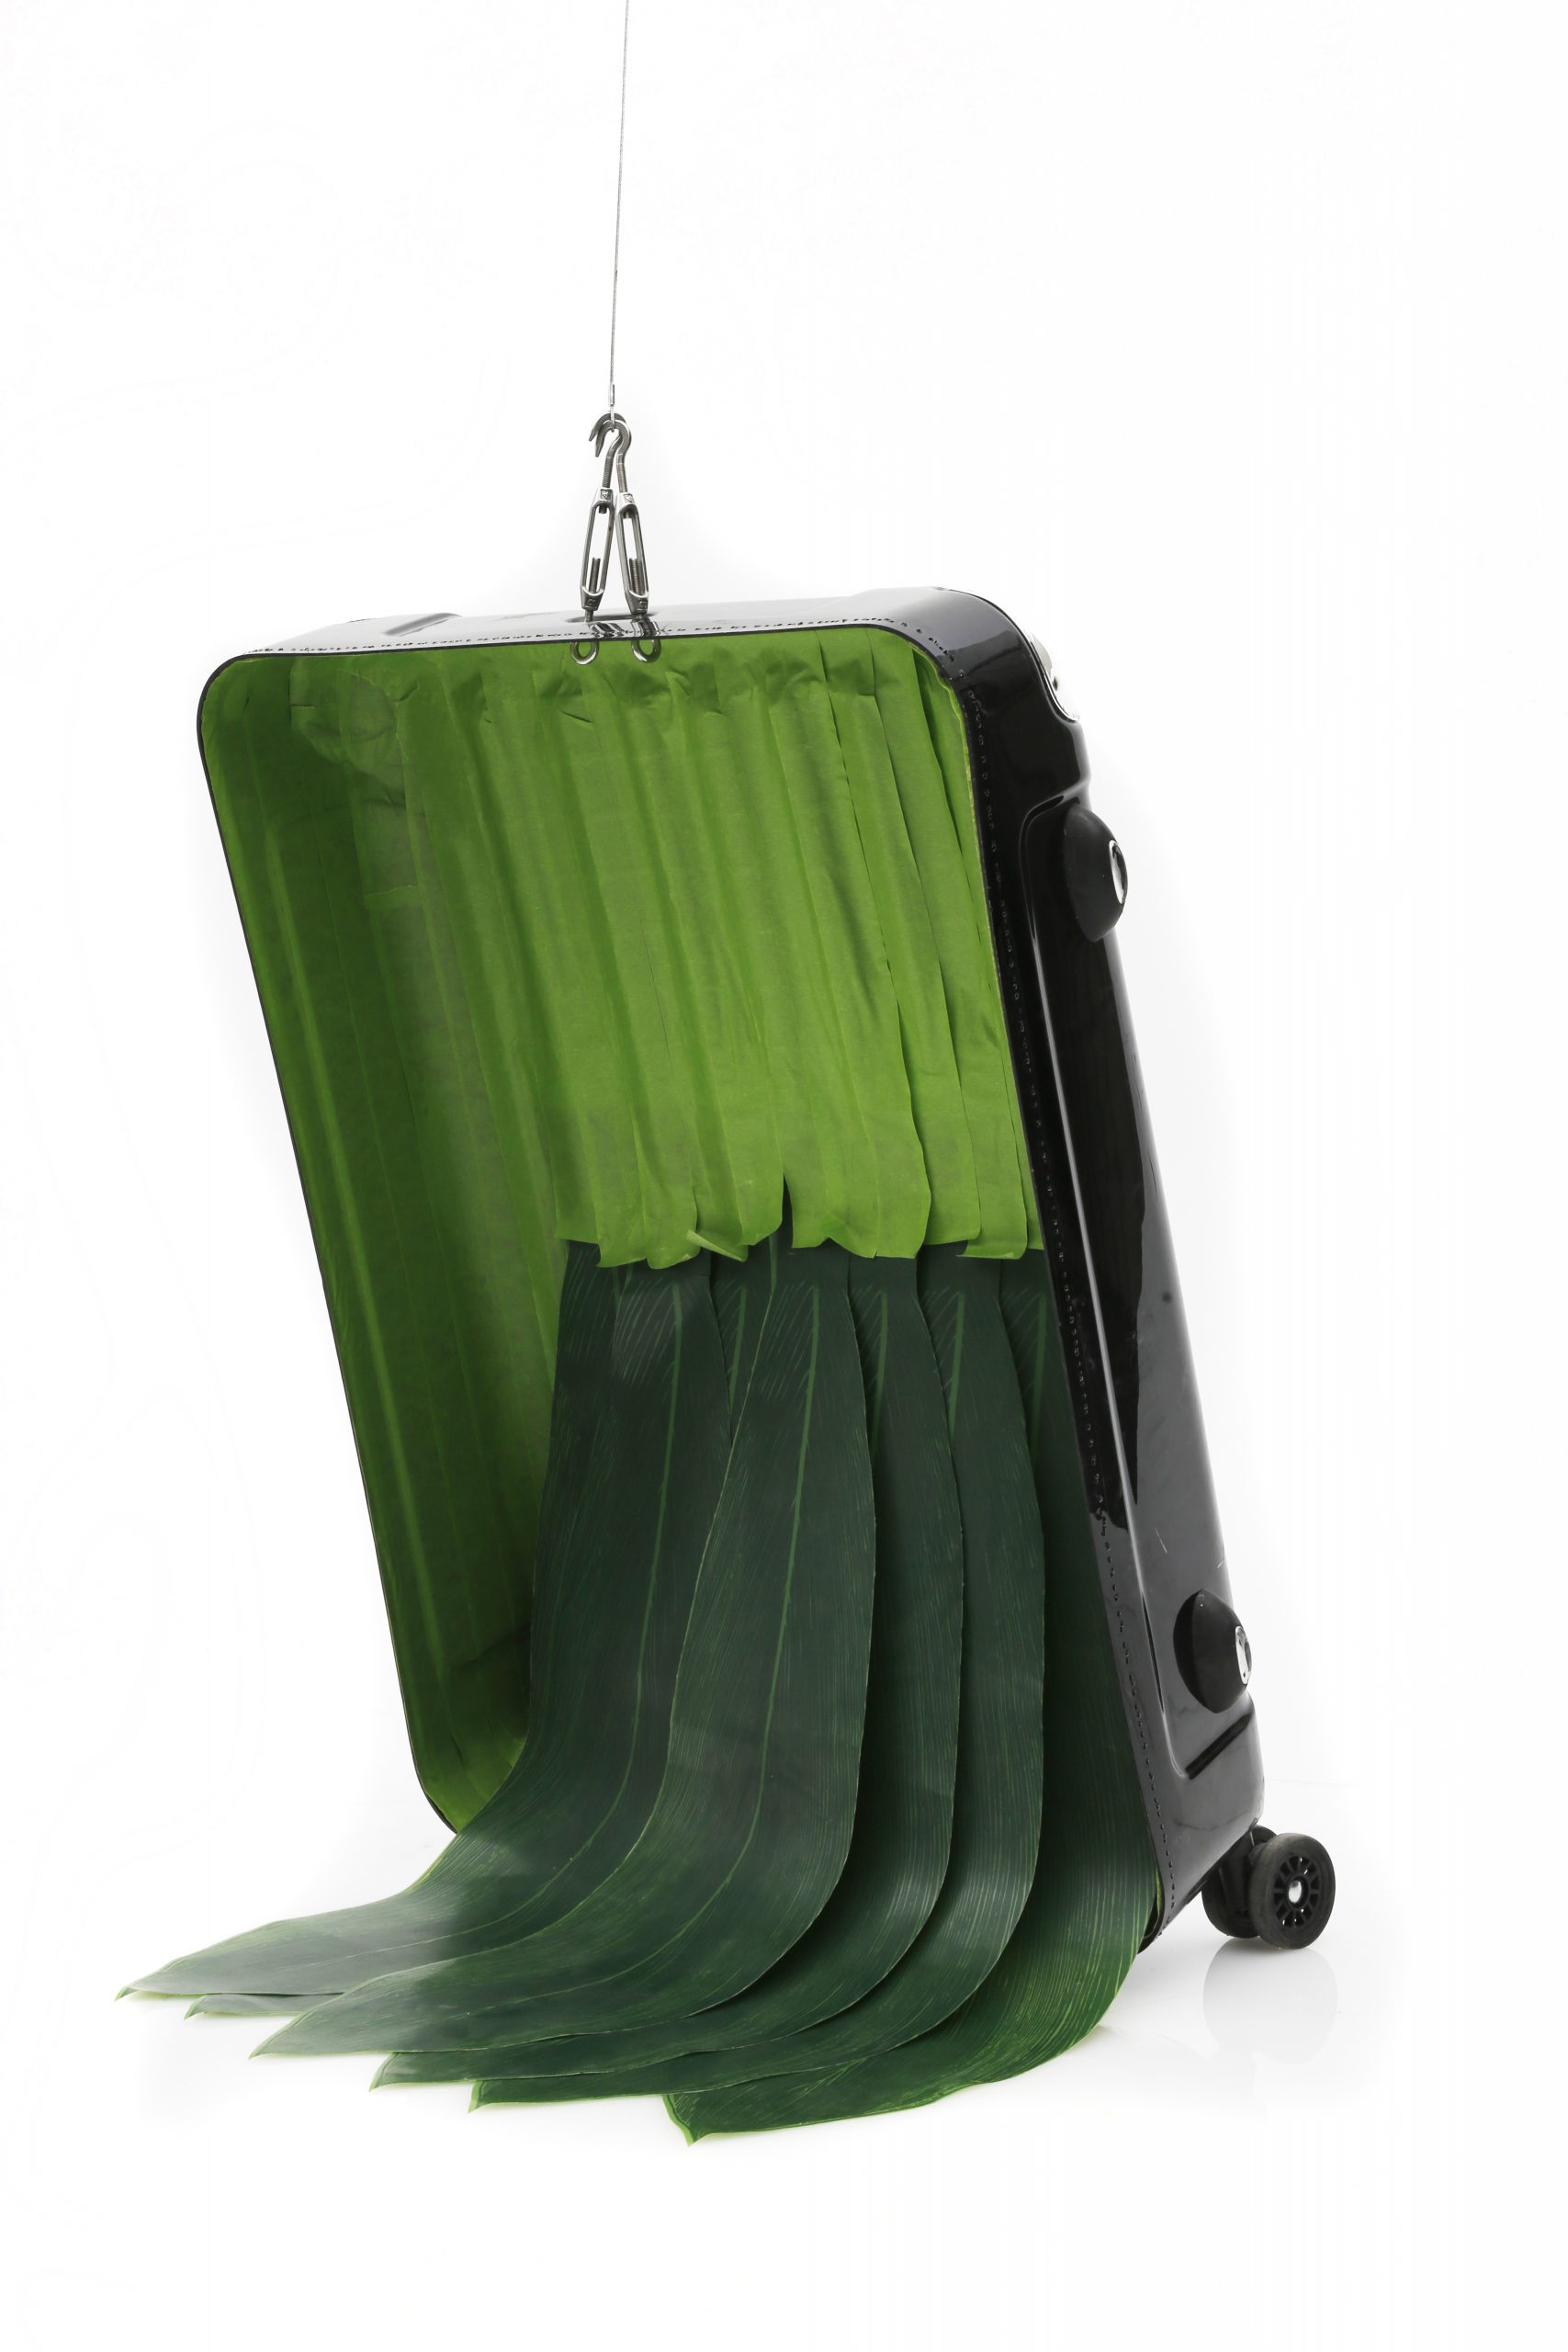 Baggage, 2017, Frog tape, plastic leaves, suitcase